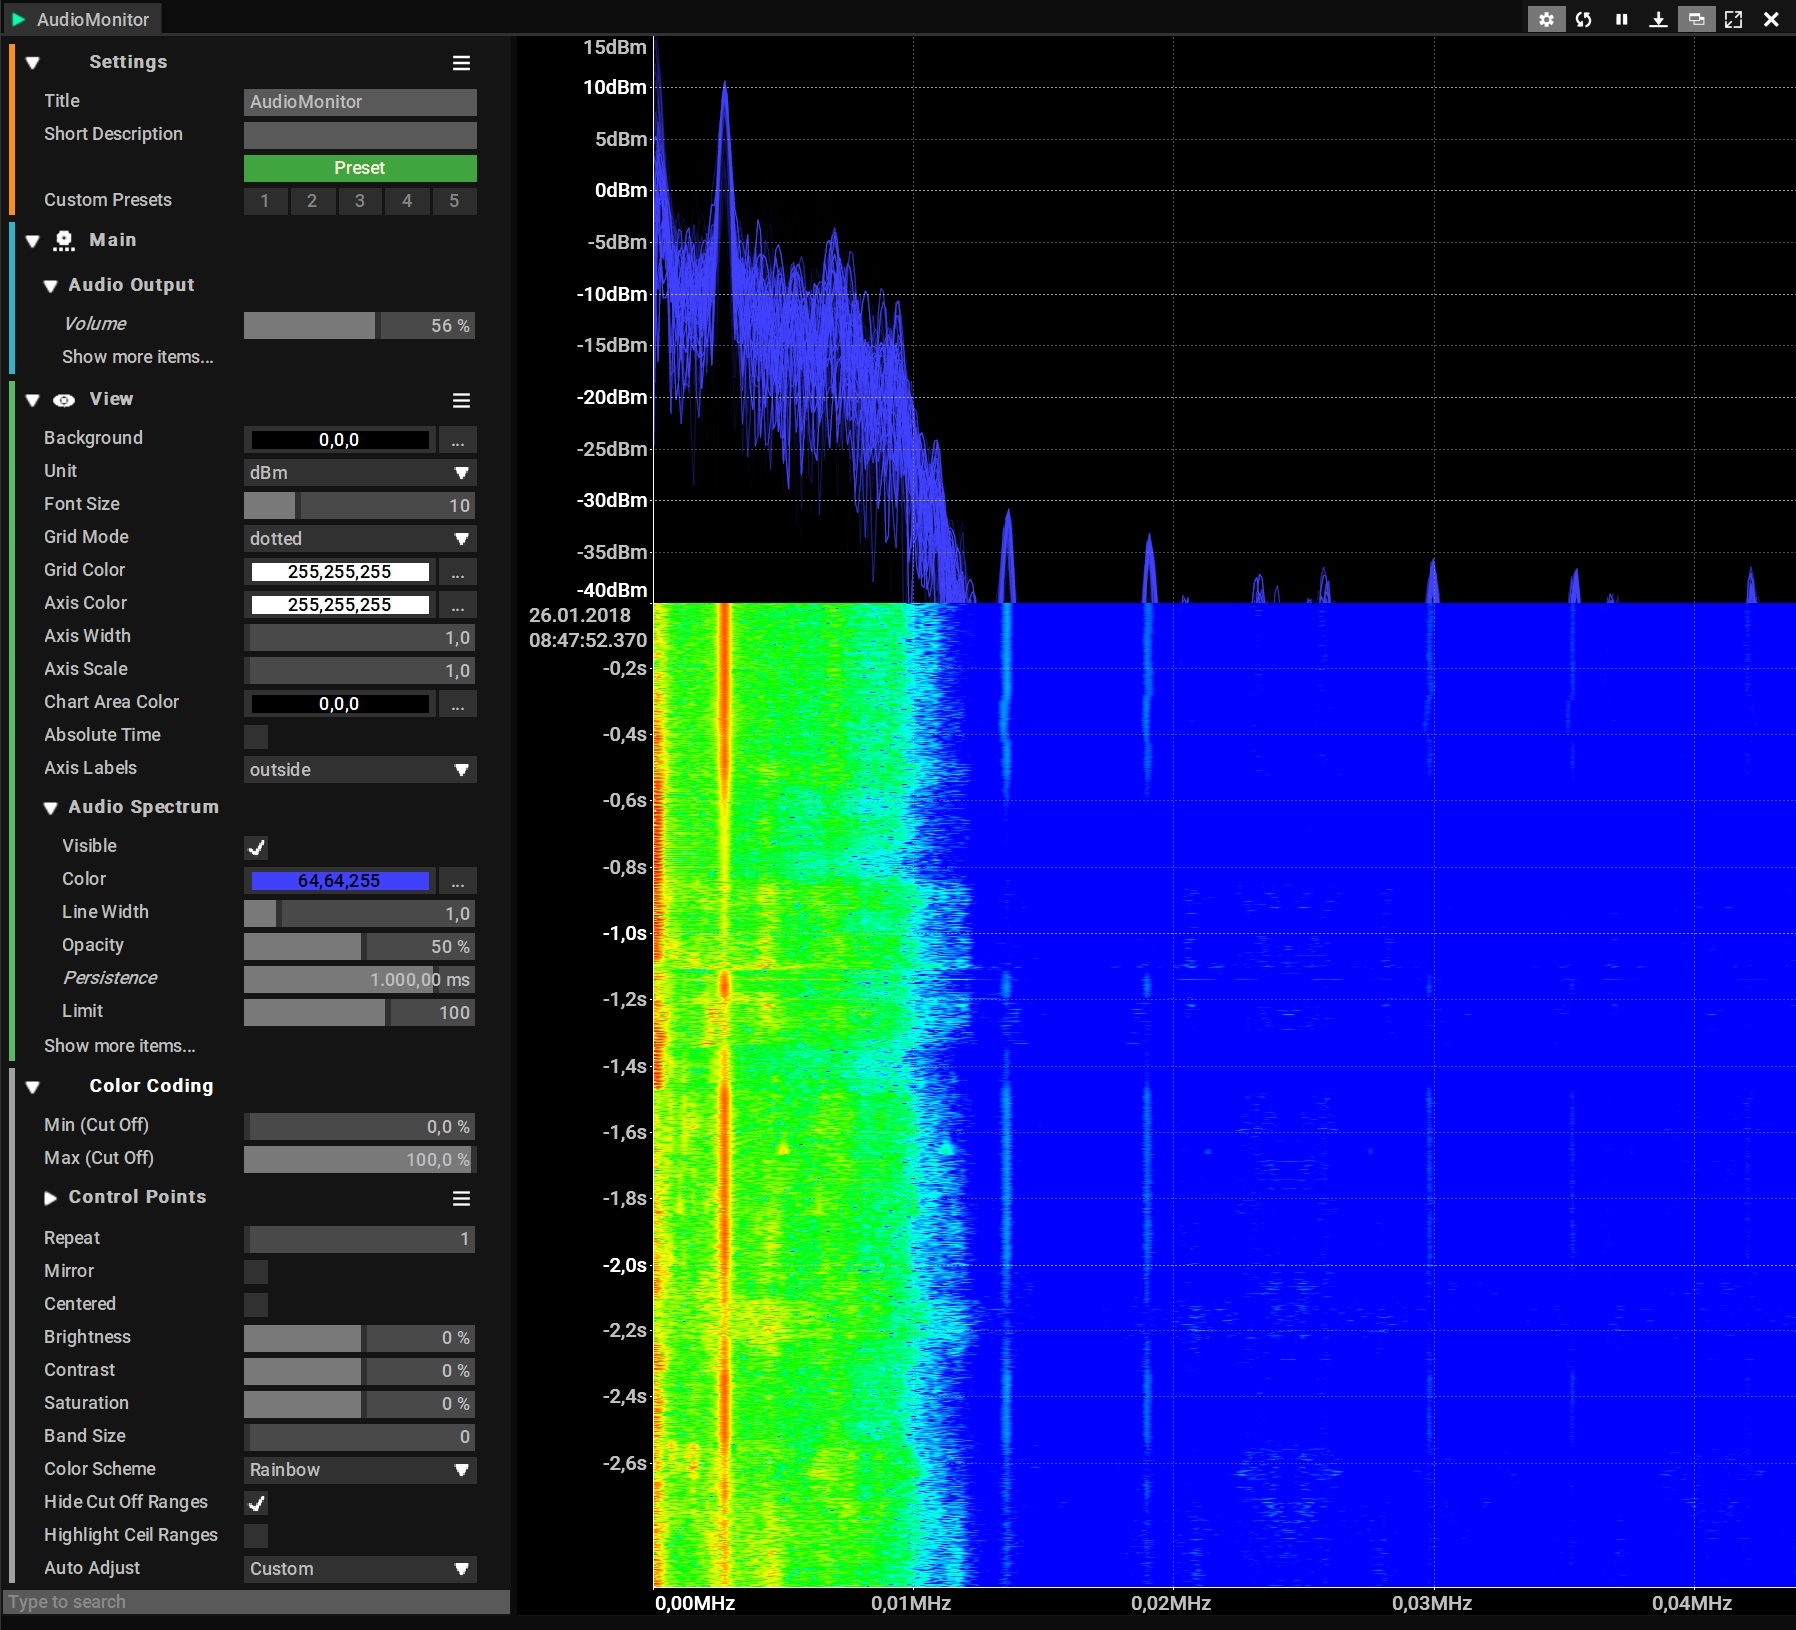 Audio Monitor shows spectrum and Waterfall of a AM/FM signal